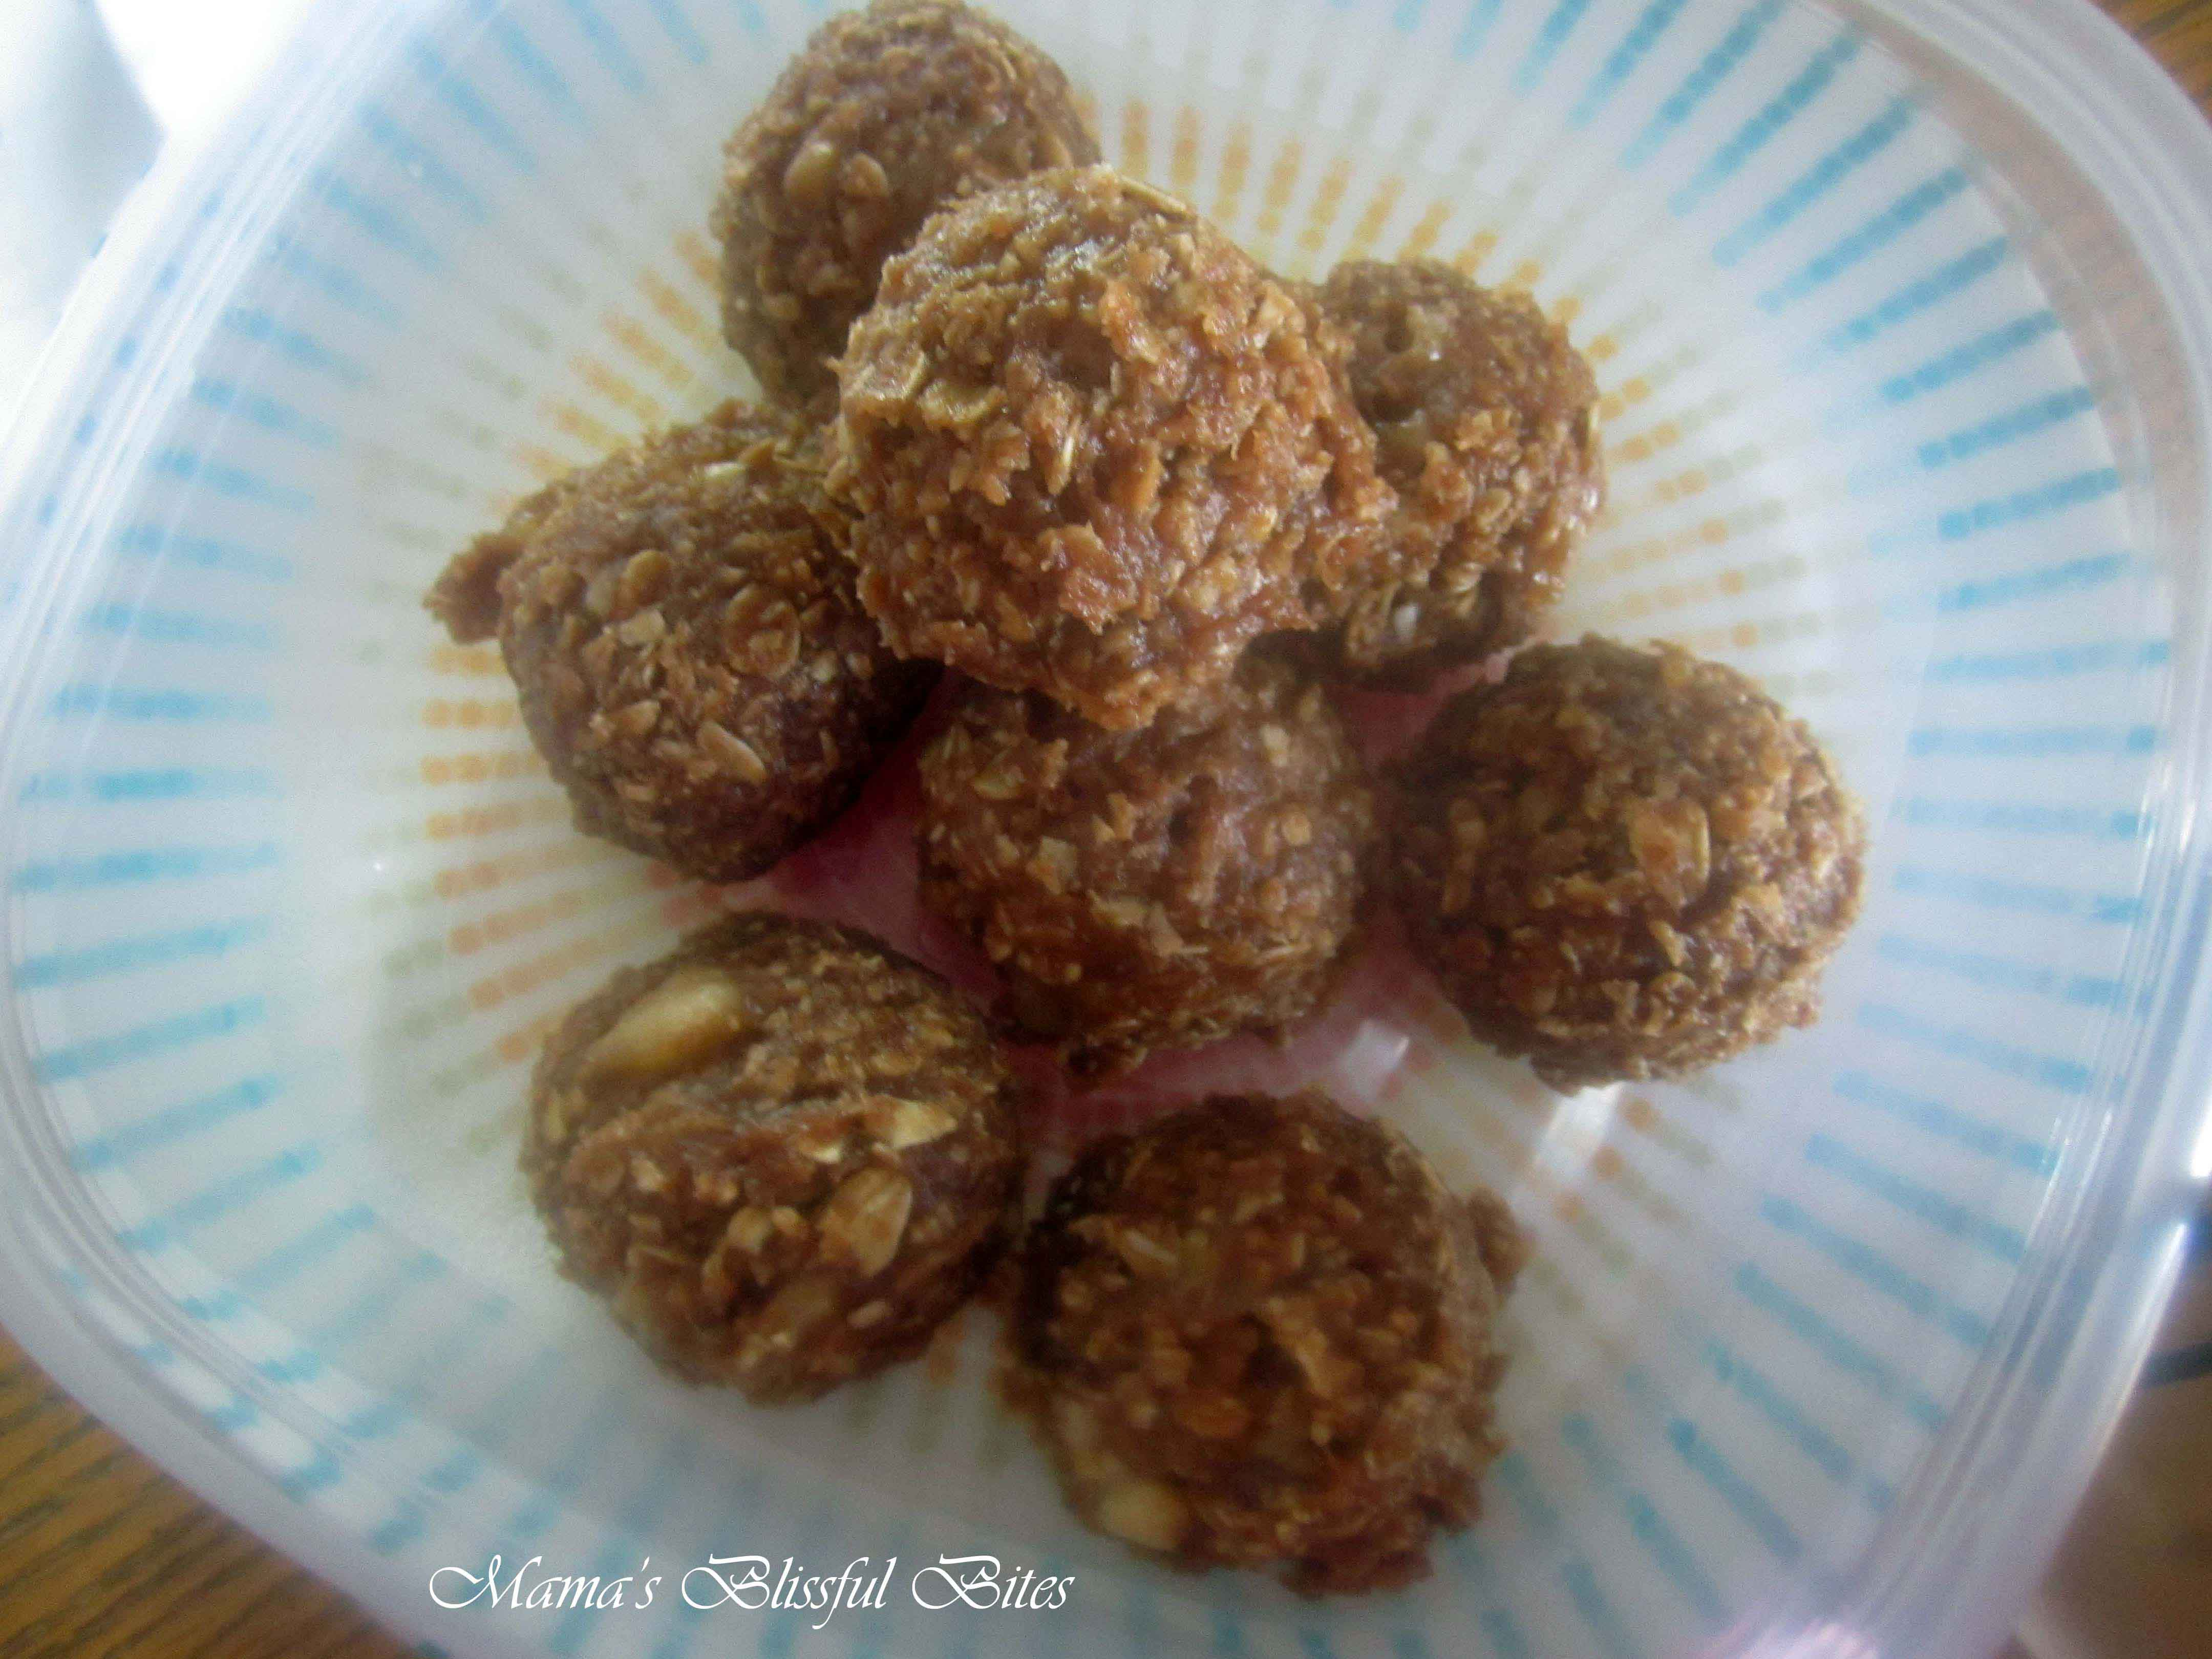 Chocolate Peanut Butter Banana Balls 4